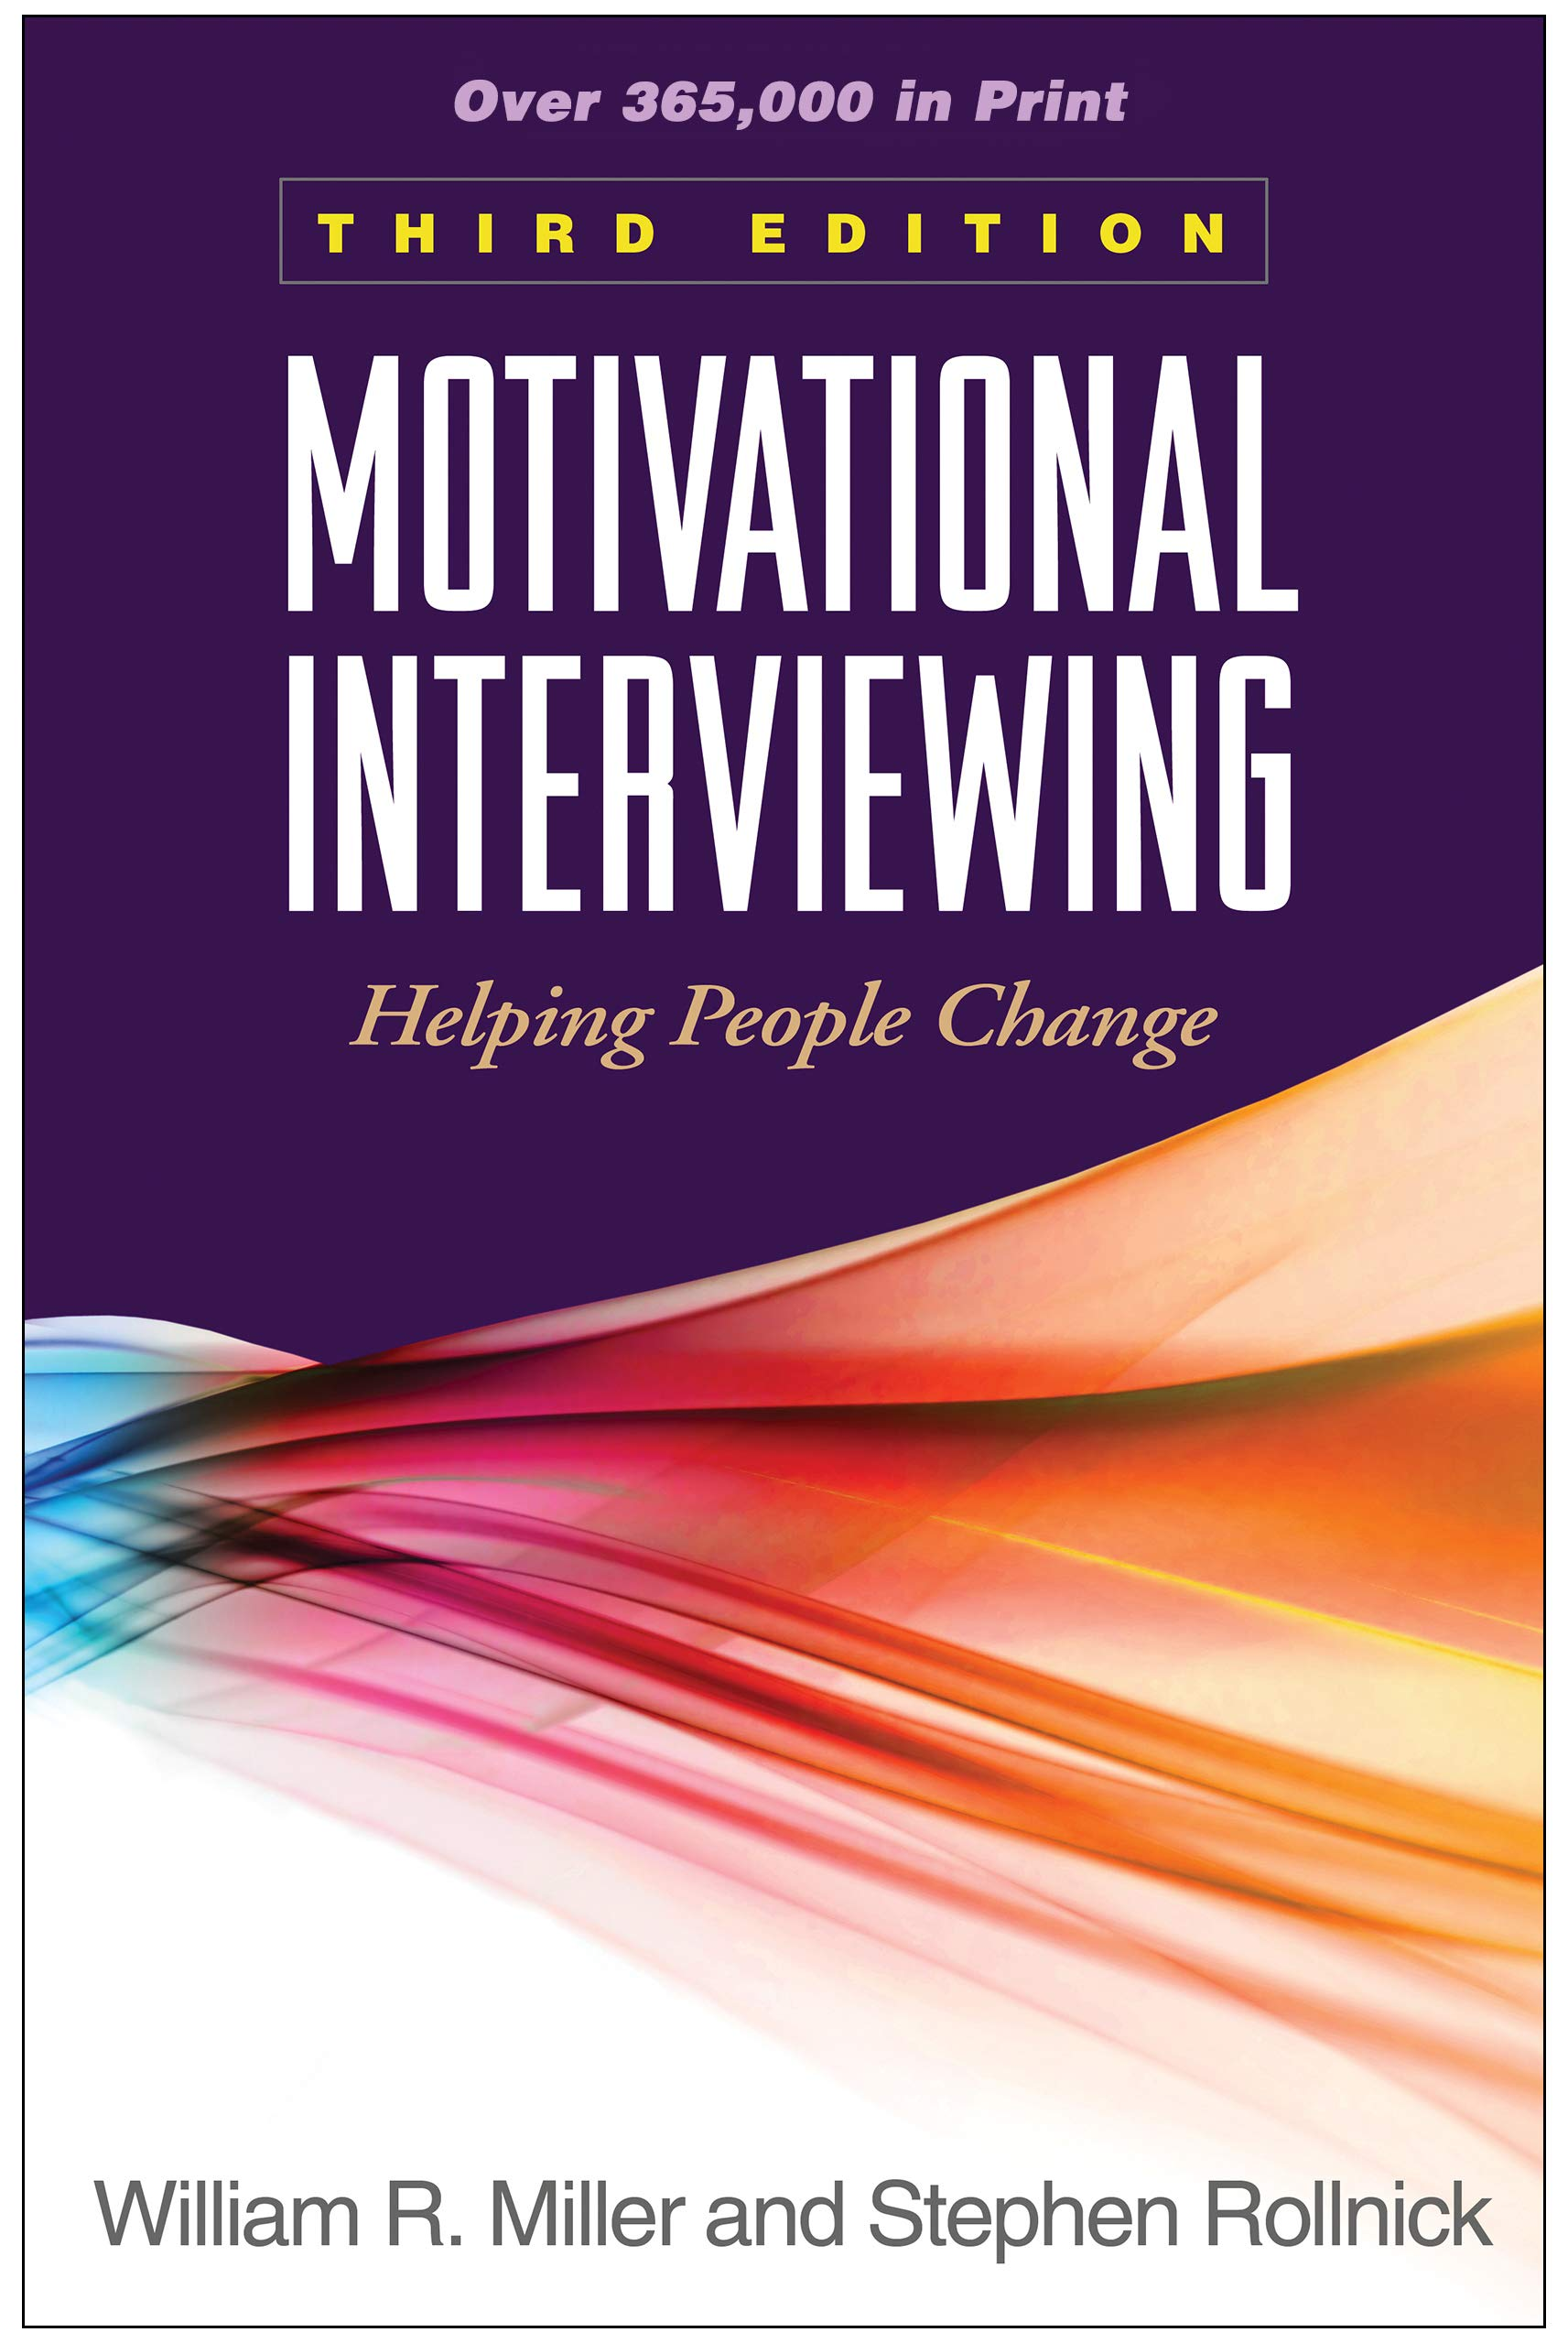 Motivational Interviewing: Helping People Change, 3rd Edition (Applications of Motivational Interviewing) by imusti